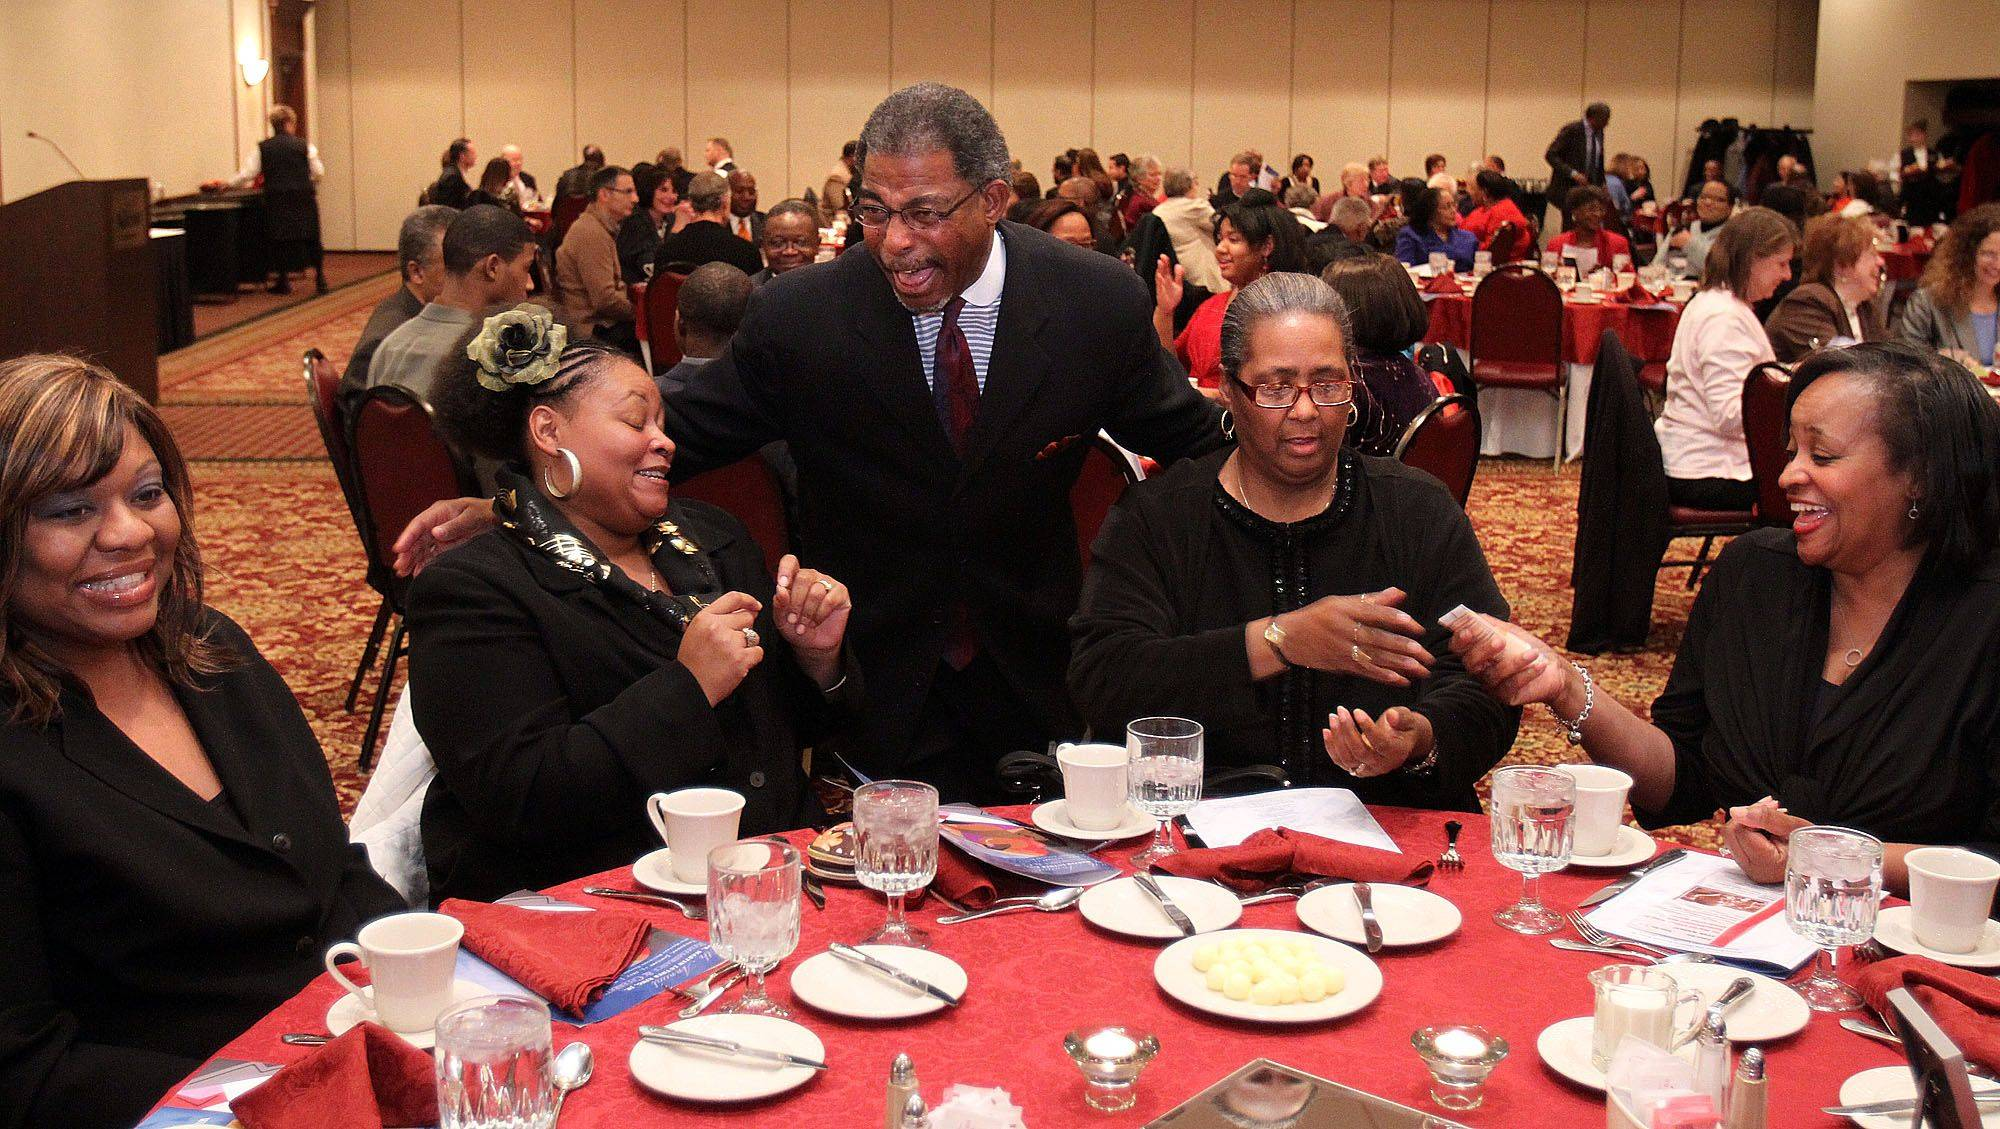 Reverend Nathaniel Edmond, pastor at Second Baptist Church in Elgin, greets each guest at a table at the Illinois Commission on Diversity and Human Relations 10th annual Martin Luther King Jr. dinner at Chicago Marriott Northwest in Hoffman Estates on Thursday, January 13.